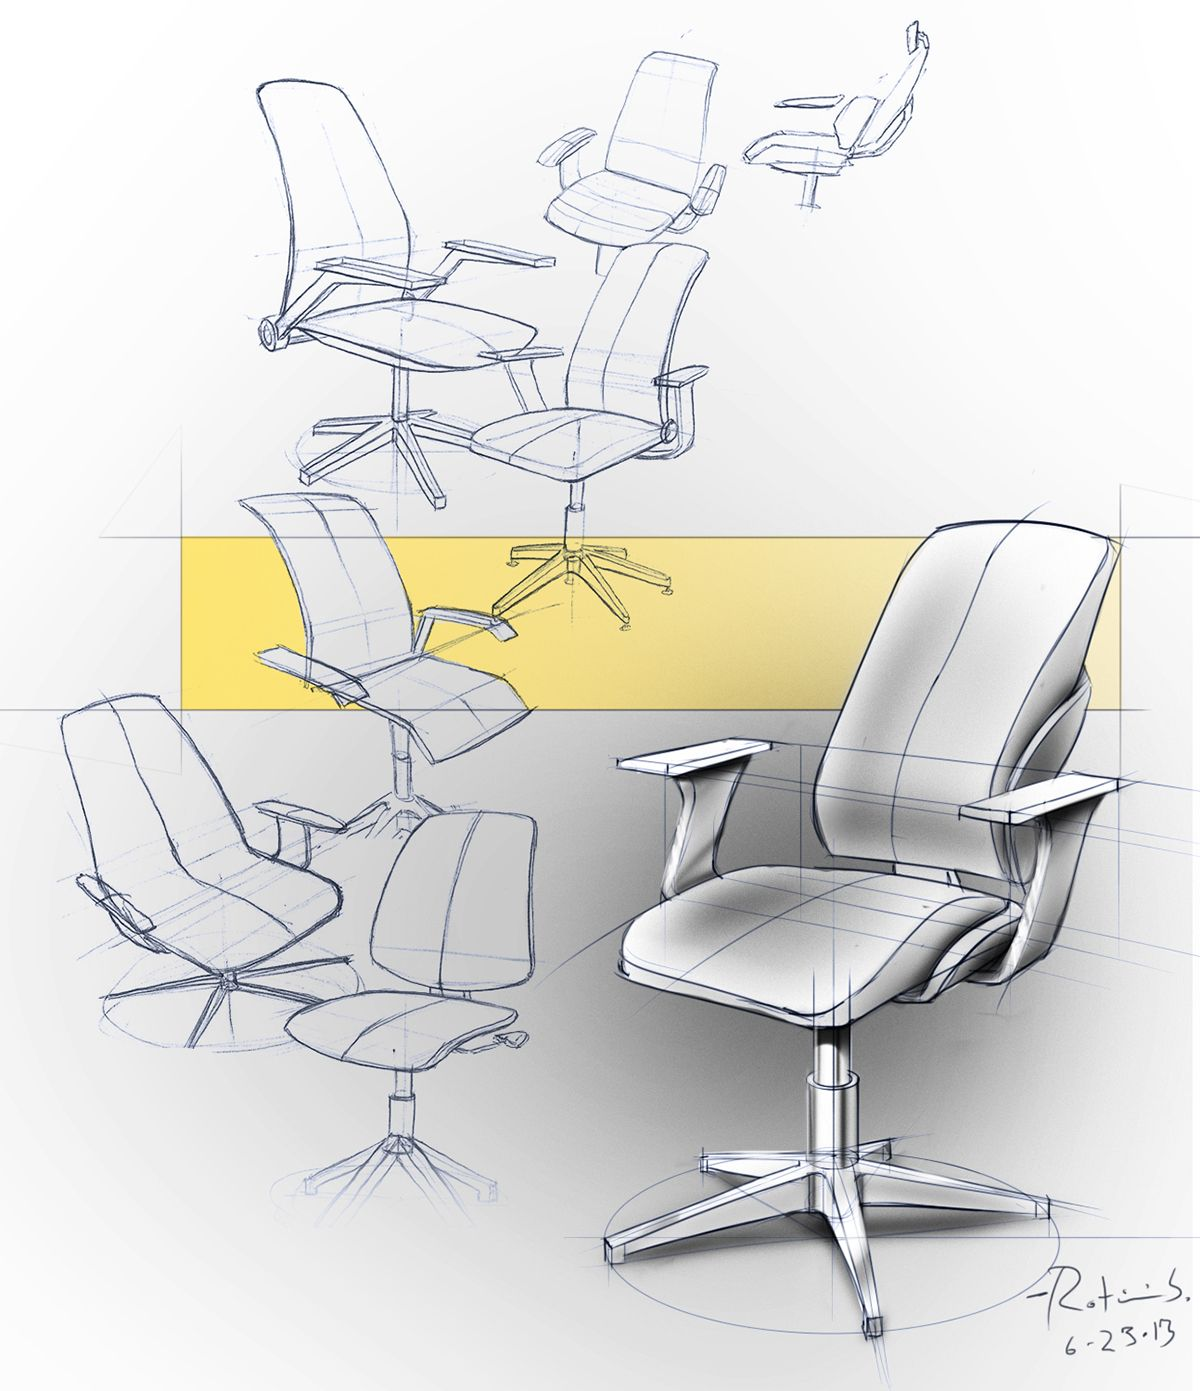 Product Sketches On Behance Furniture Design Sketches Industrial Design Sketch Concept Design